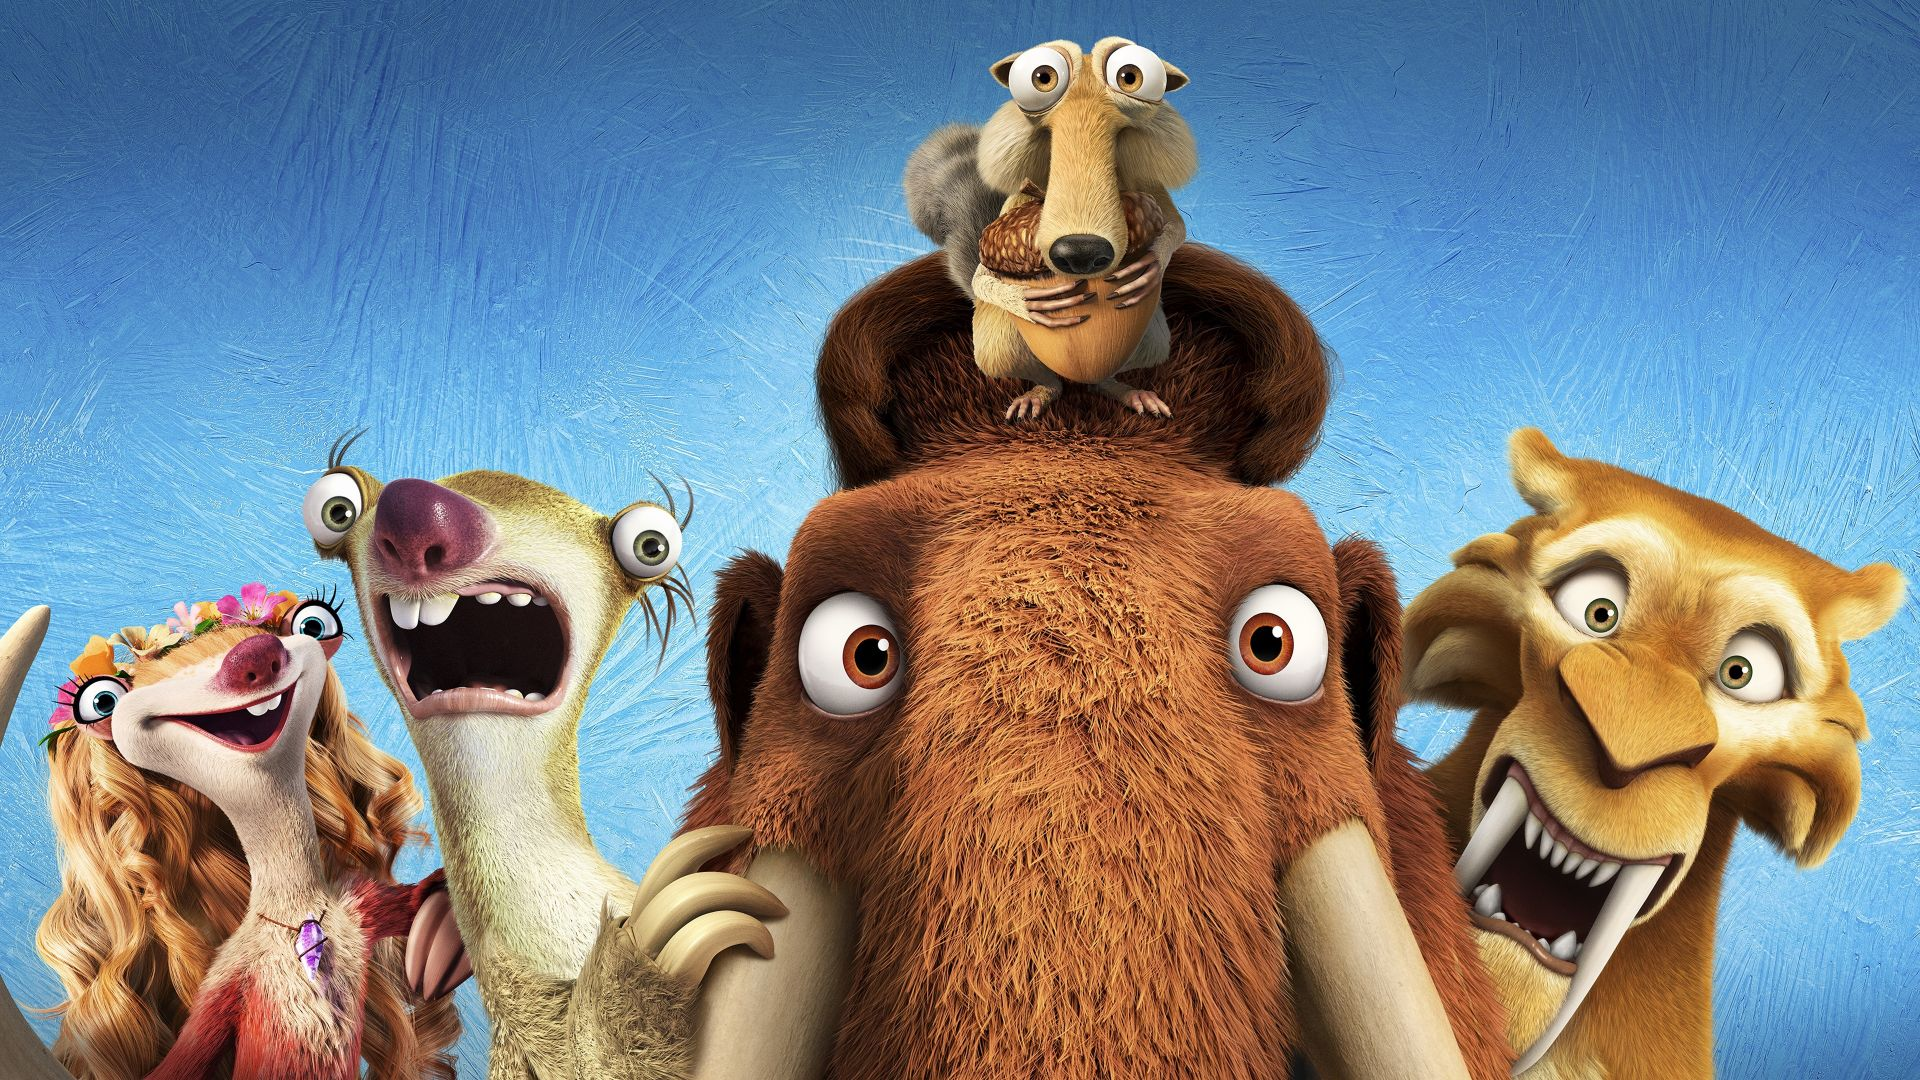 Ice Age 5: Collision Course, diego, manny, scrat, sid, mammoths, best animations of 2016 (horizontal)